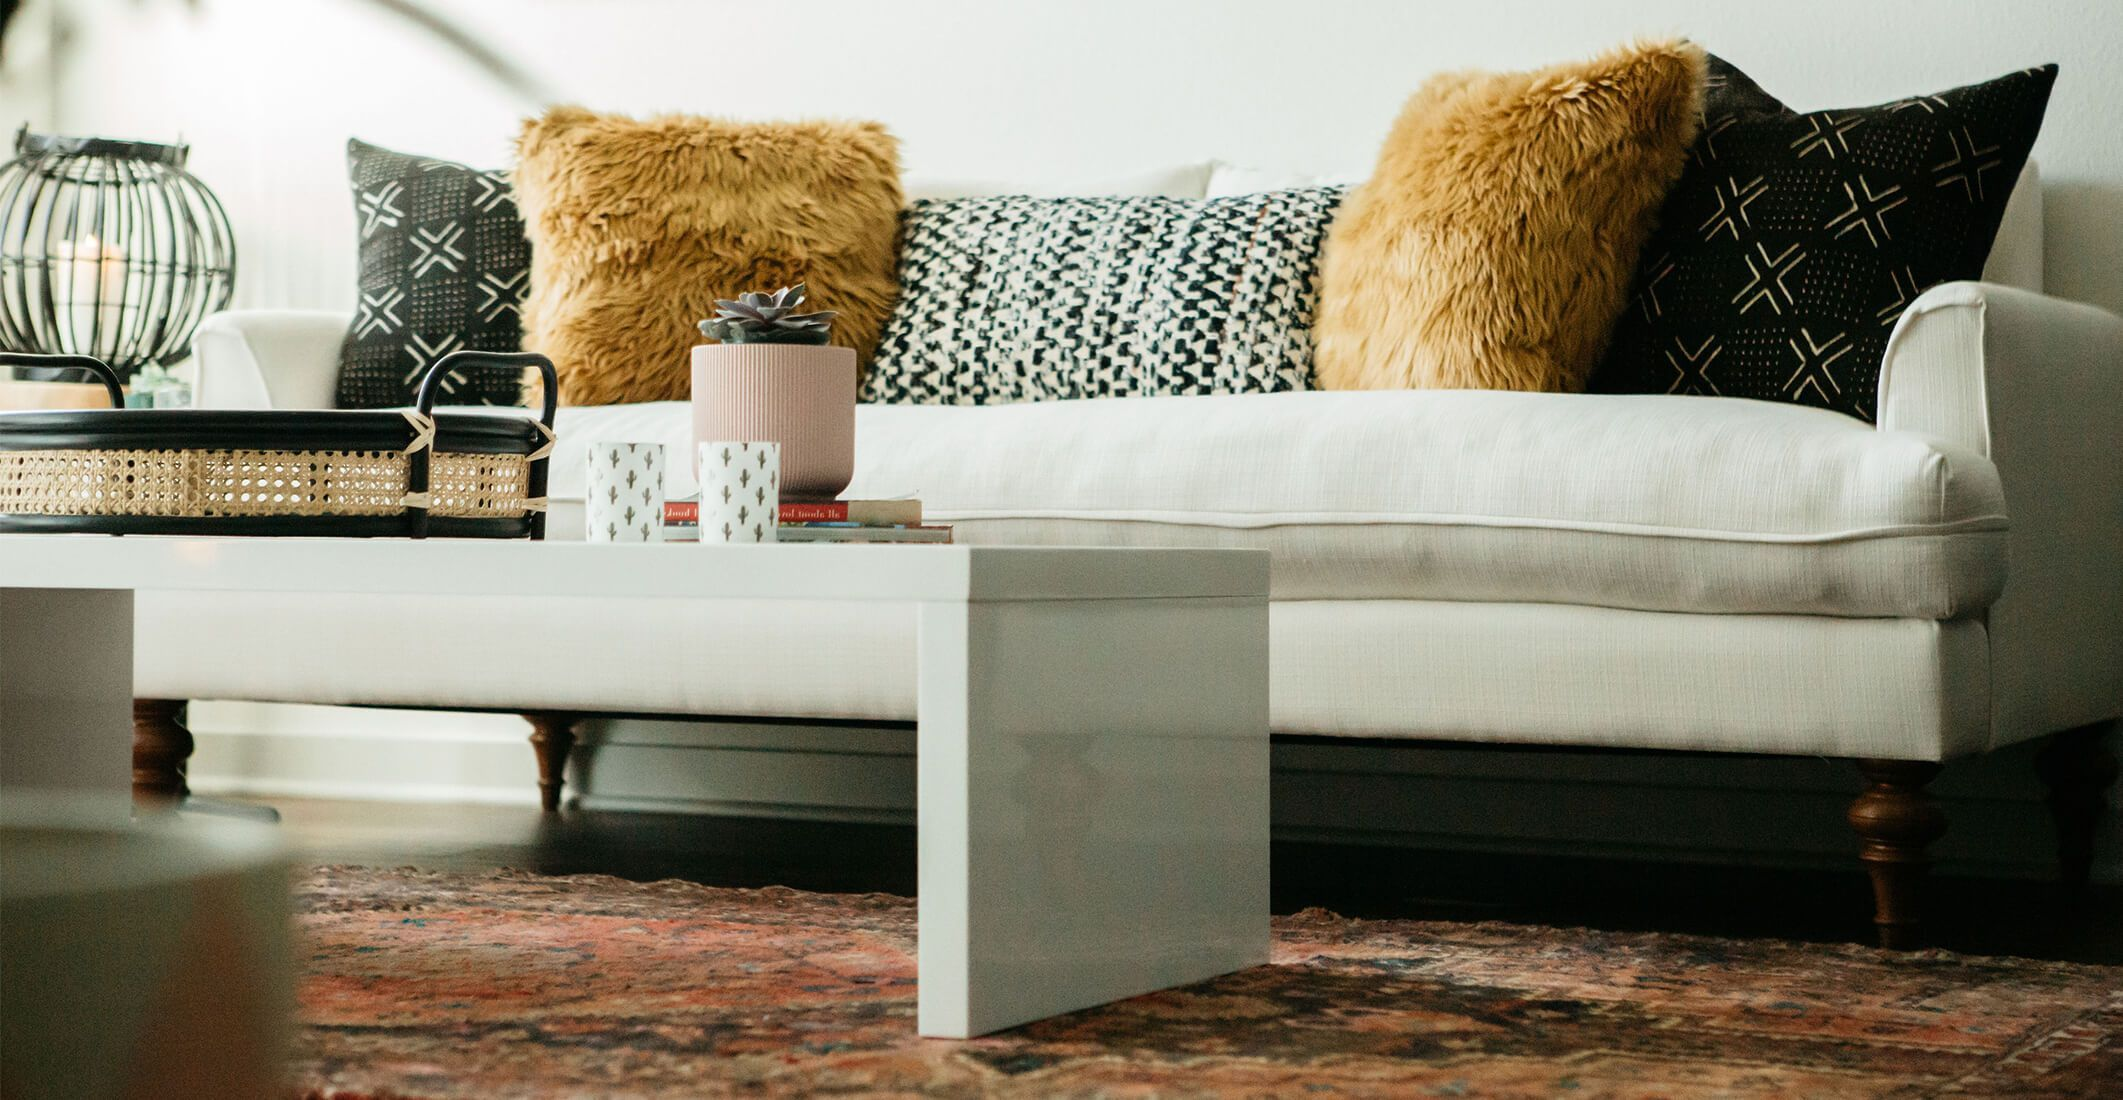 Affordable Modern Furniture: Sofas, Chairs, Tables - Apt2B ...